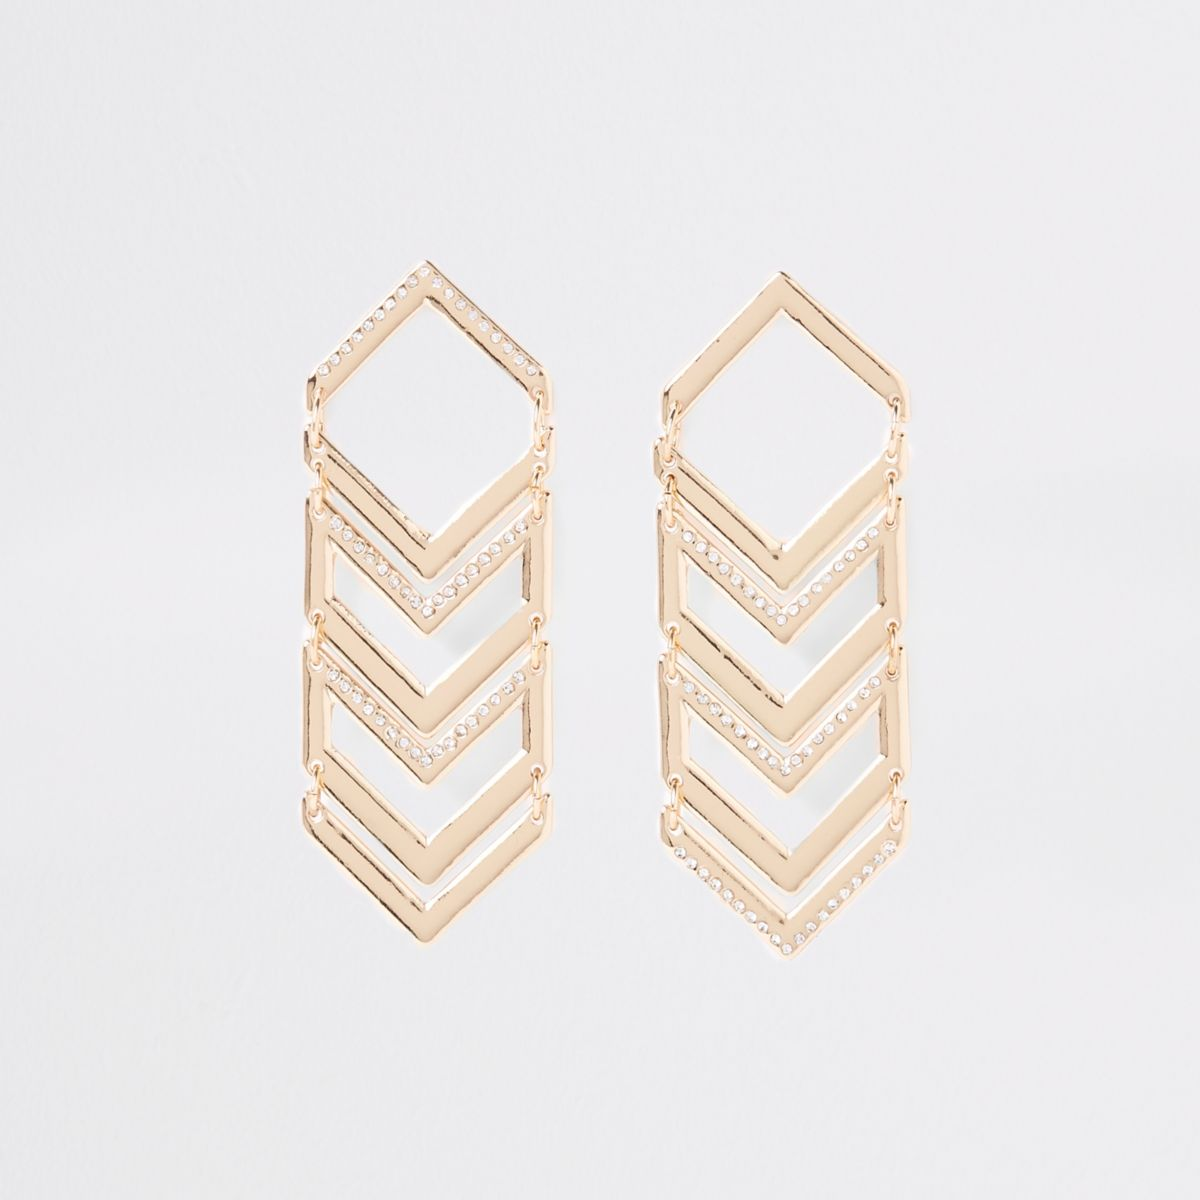 Gold tone triangular stud drop earrings